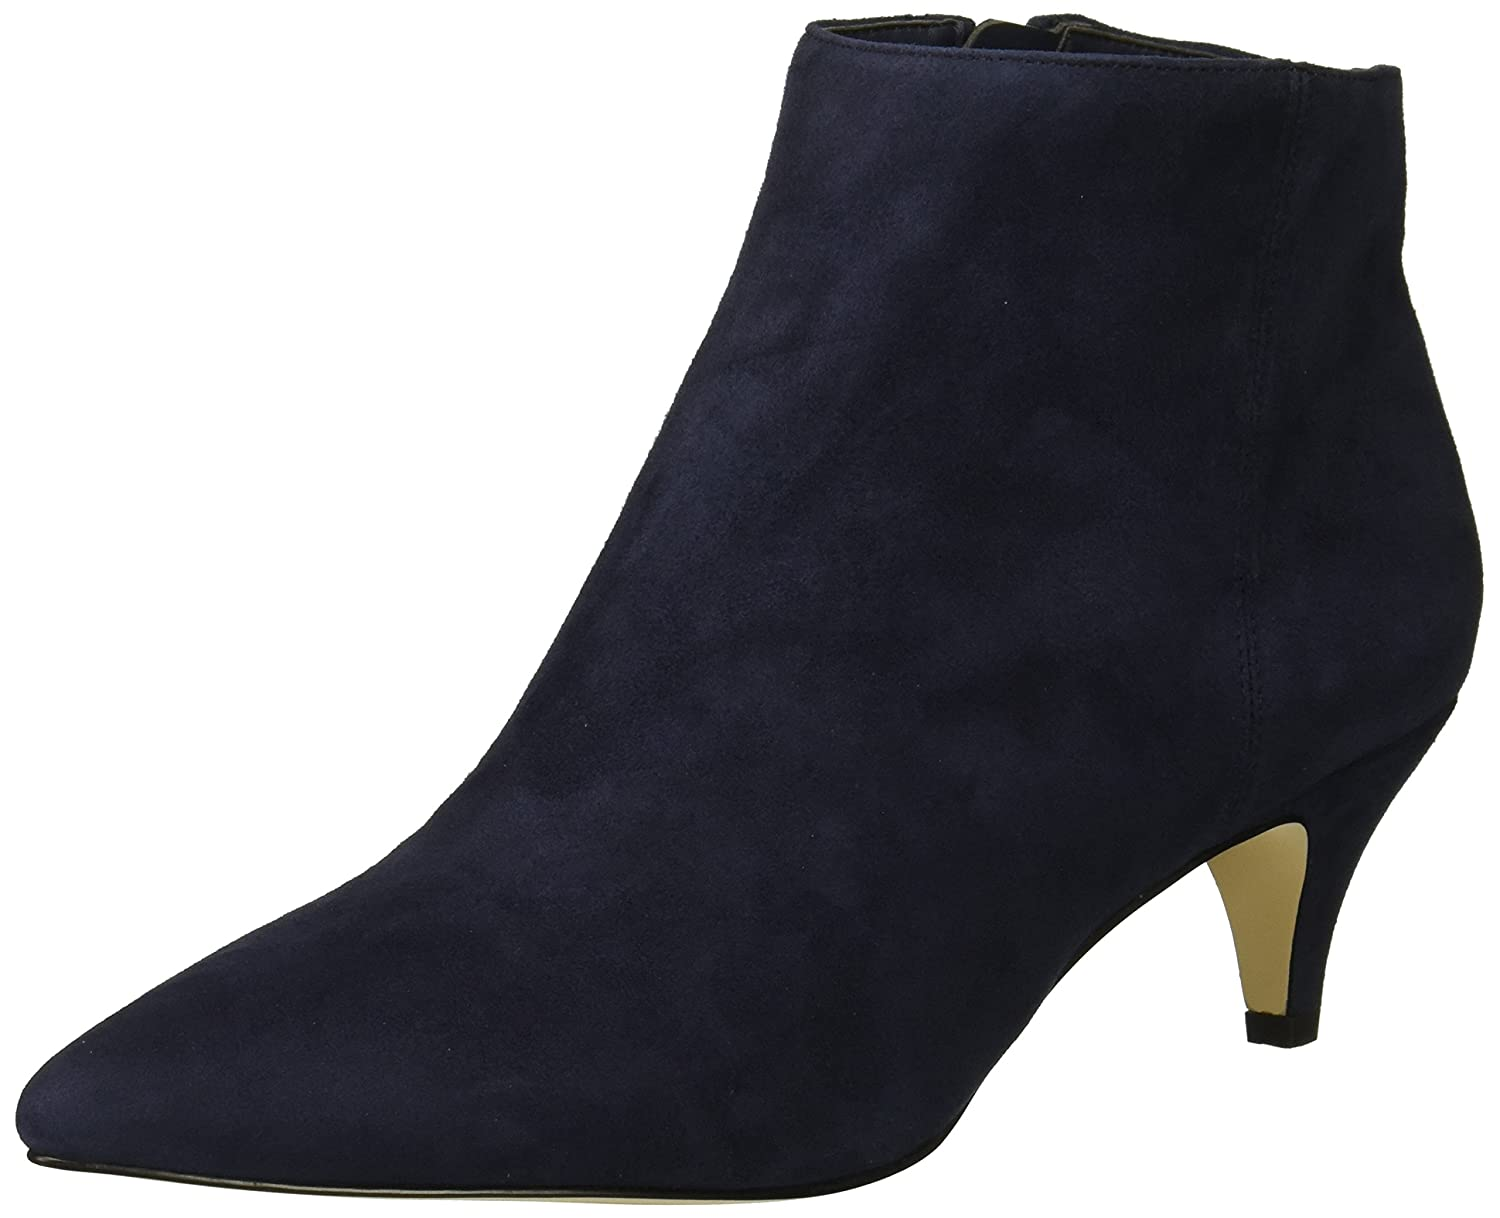 Sam Edelman Women's Kinzey Fashion Boot B07CD2QCKL 6.5 W US|Baltic Navy Suede